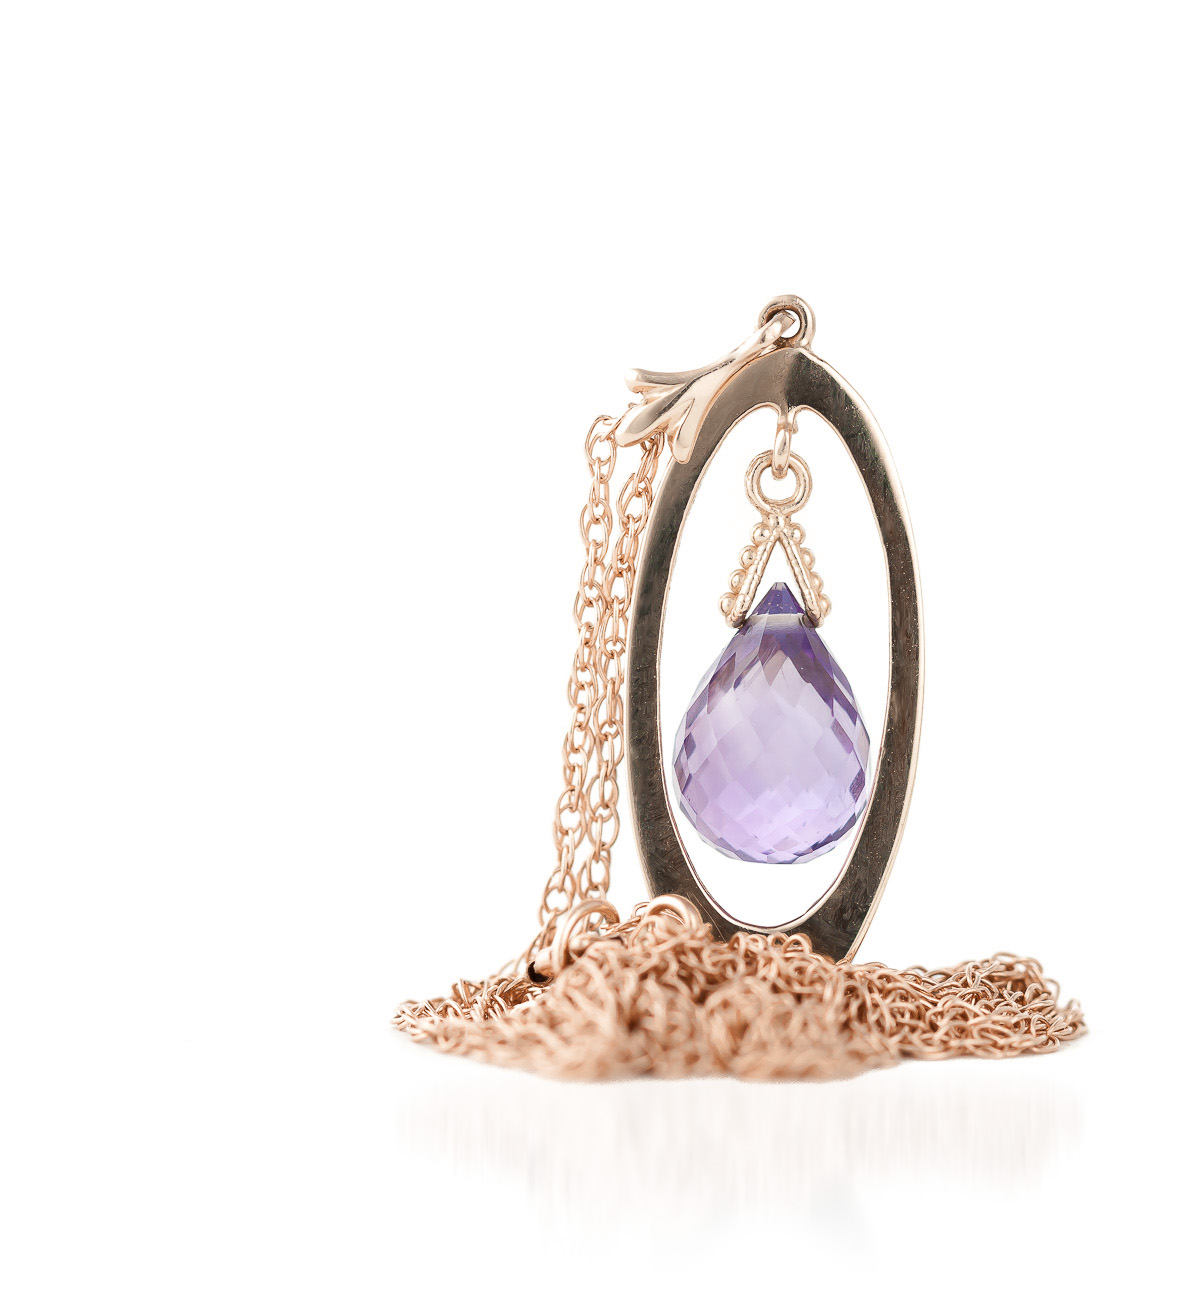 Amethyst Orb Briolette Pendant Necklace 0.7ct in 9ct Rose Gold